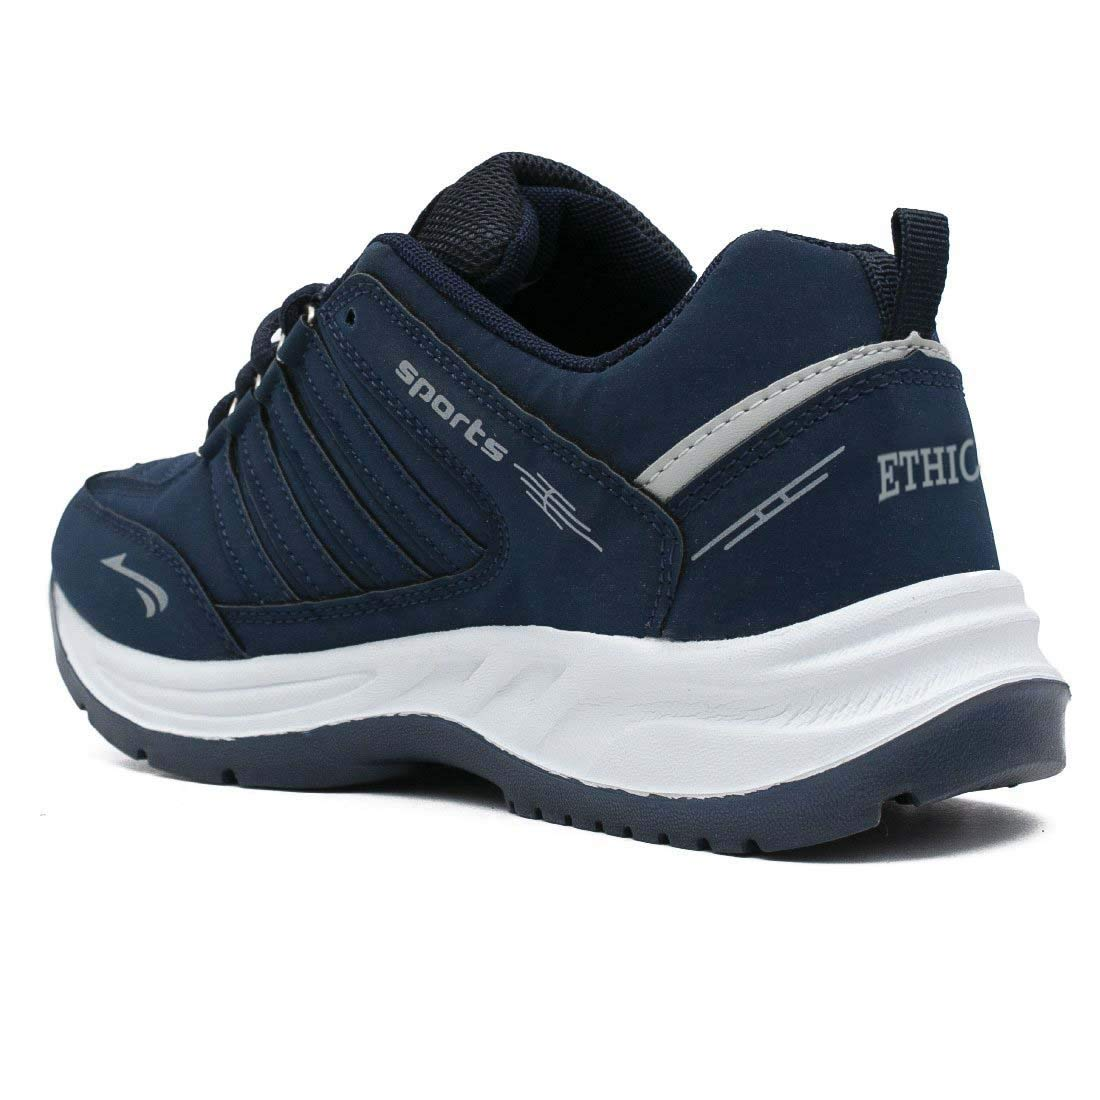 4fe94fe6ea9ff ETHICS Perfect Ultra Lite Sport Shoes for Men  Buy Online at Low Prices in  India - Amazon.in